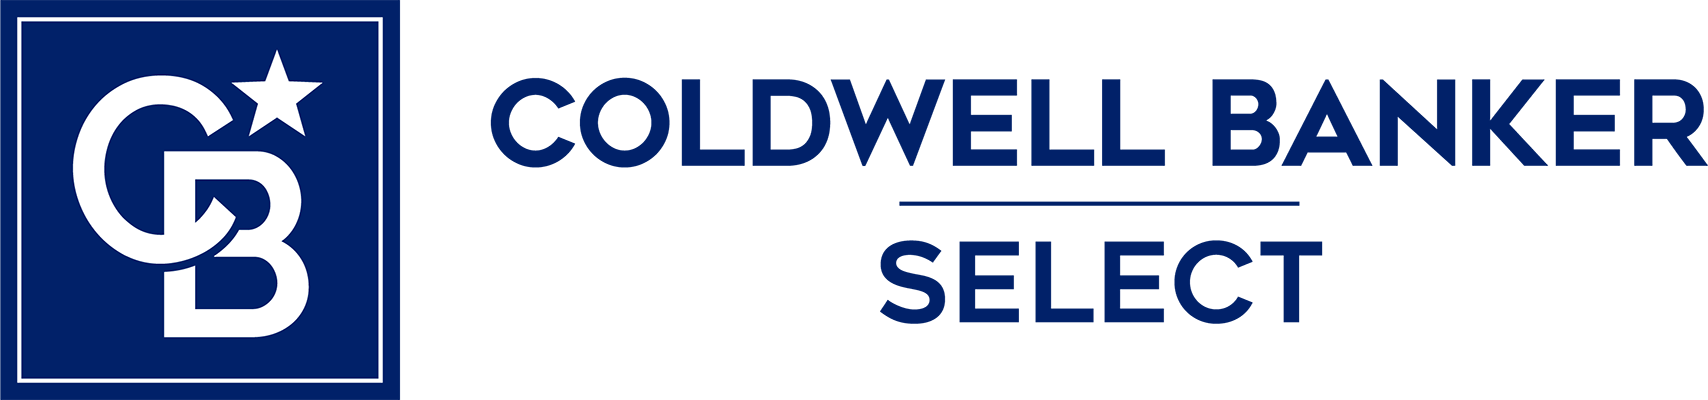 Northwest Office - Coldwell Banker Select Logo